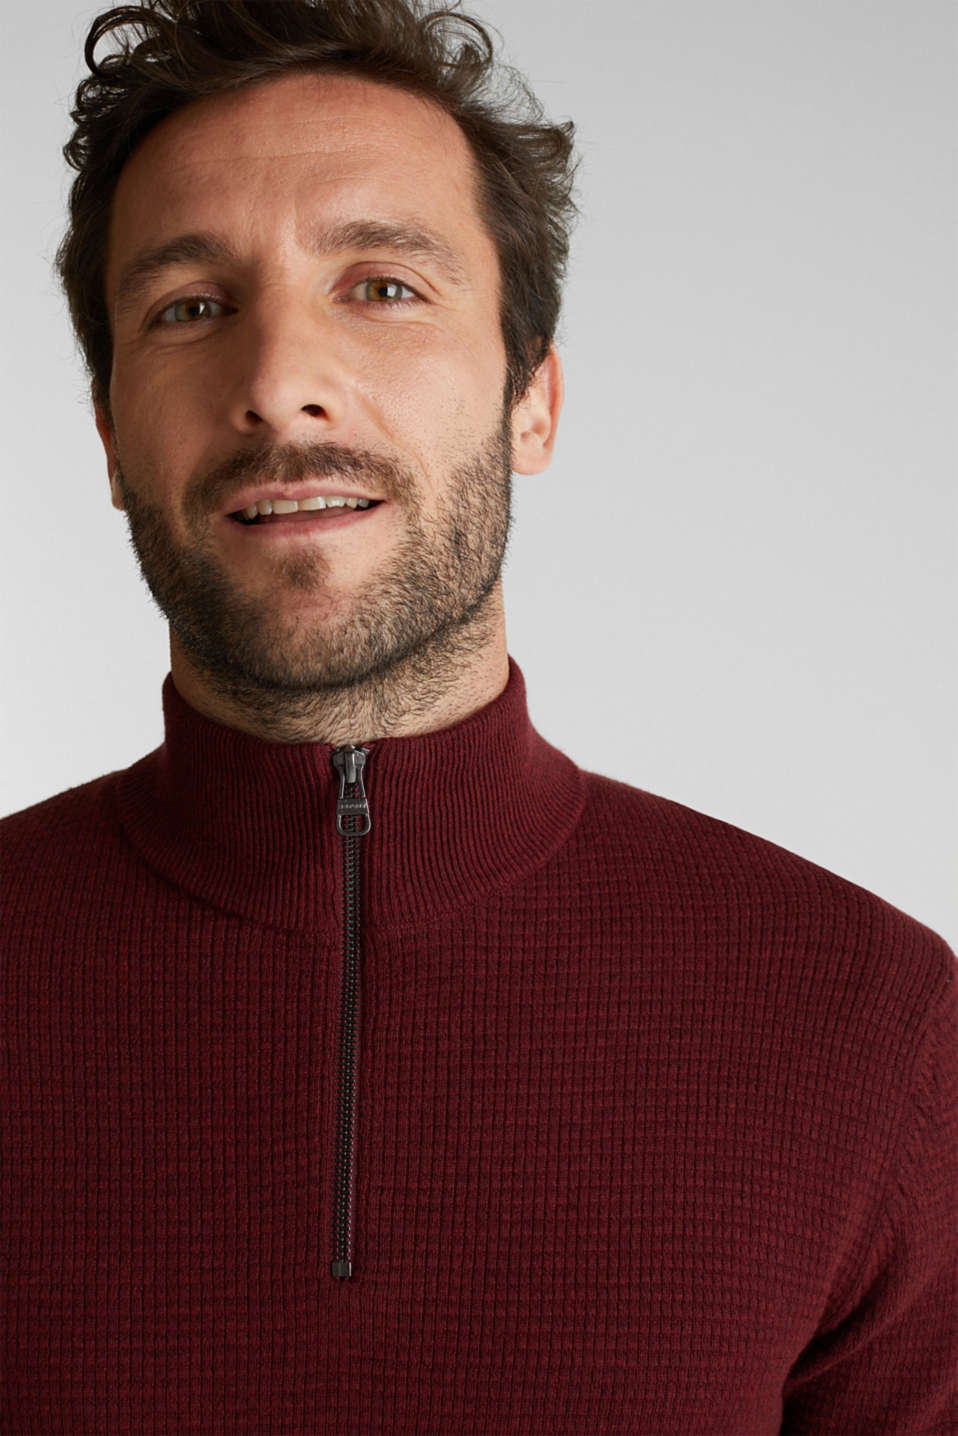 With cashmere: Textured knit jumper, DARK RED, detail image number 5